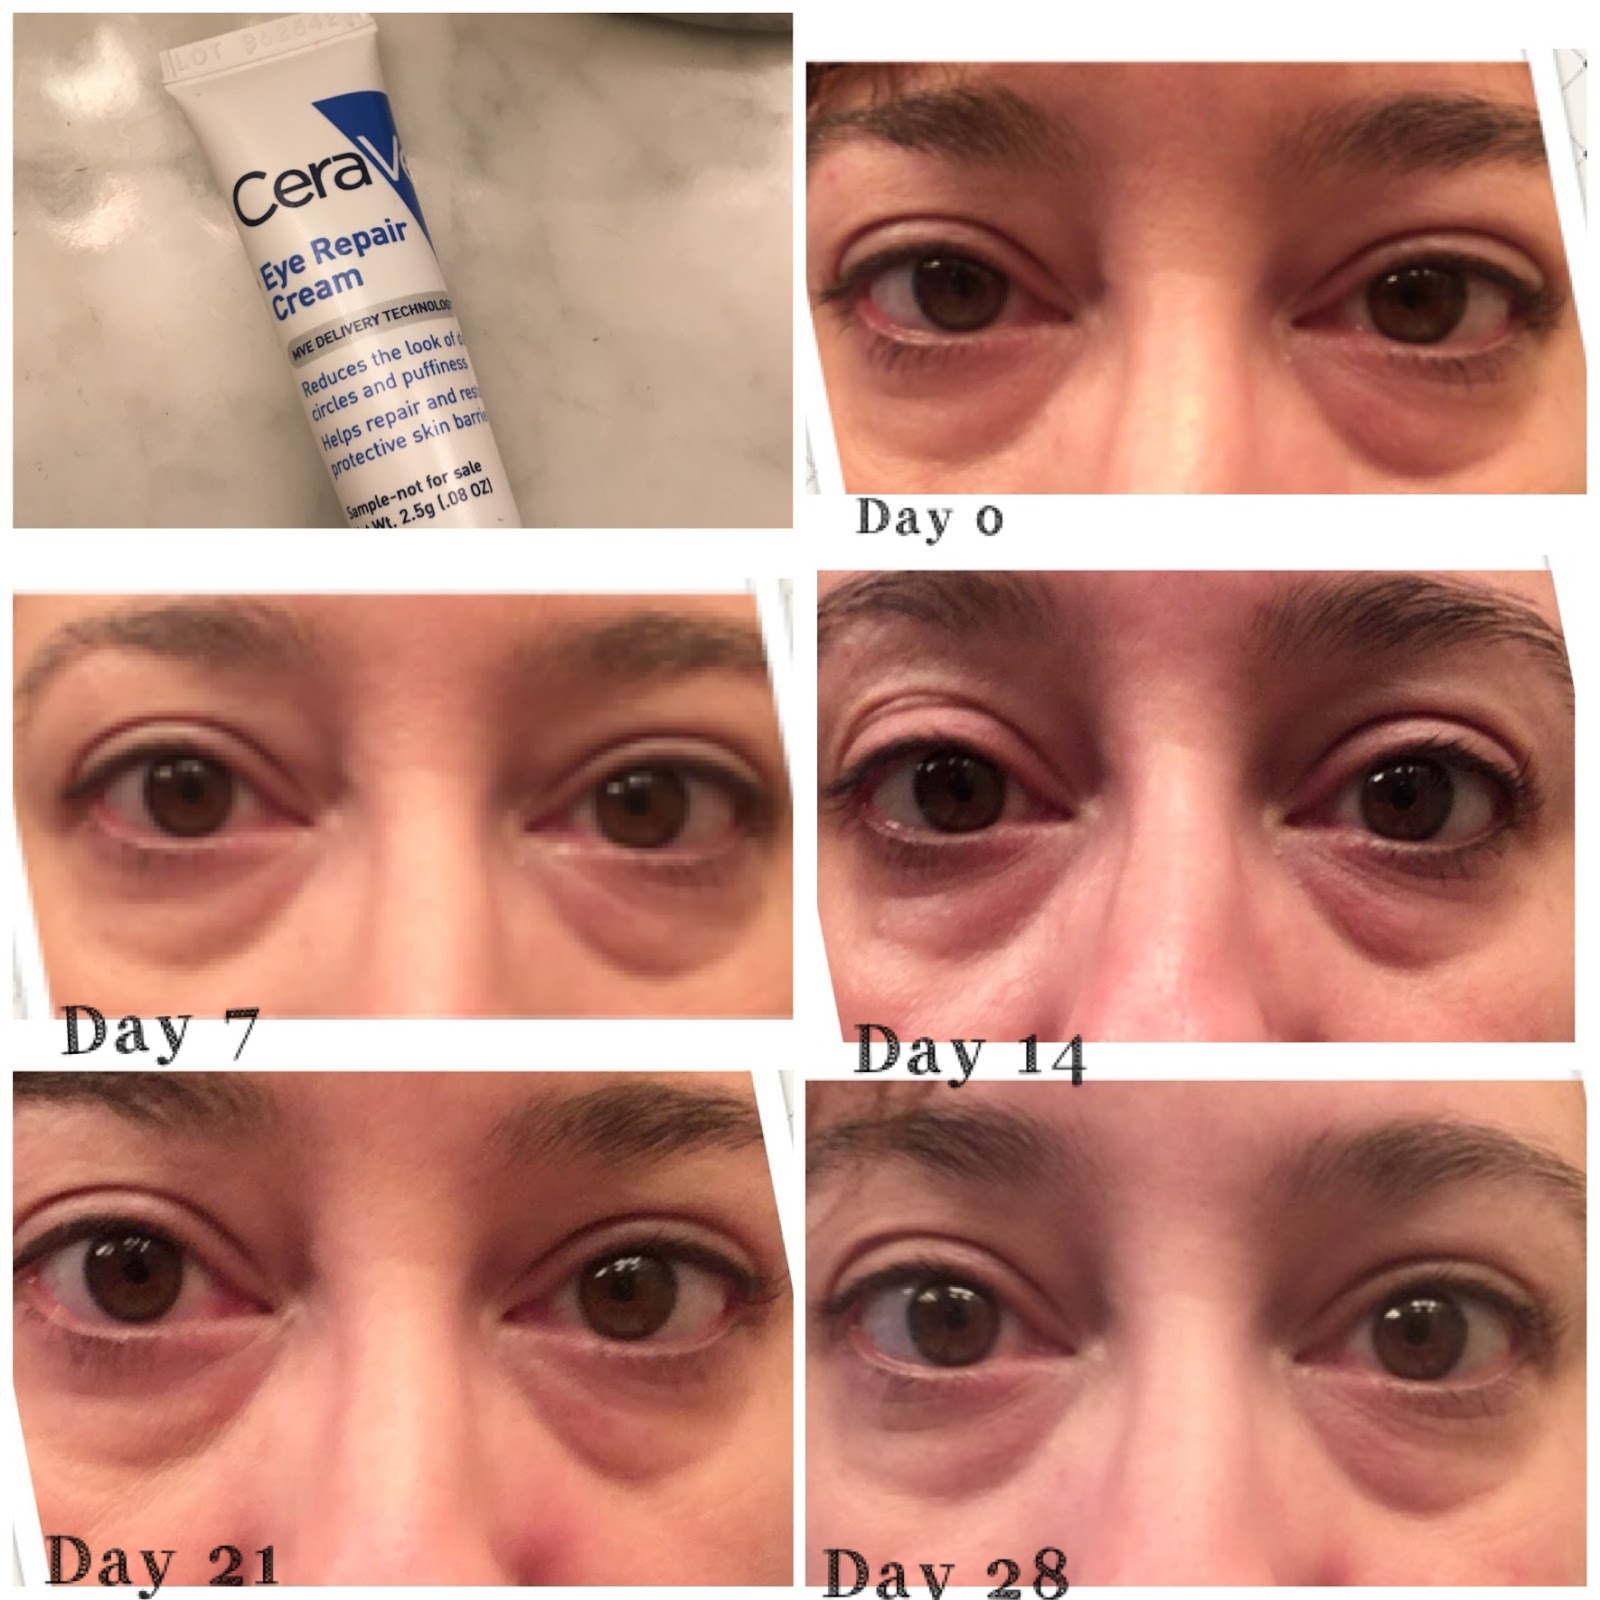 Exploring Makeup In My 40 S Review Of Cerave Eye Repair Cream